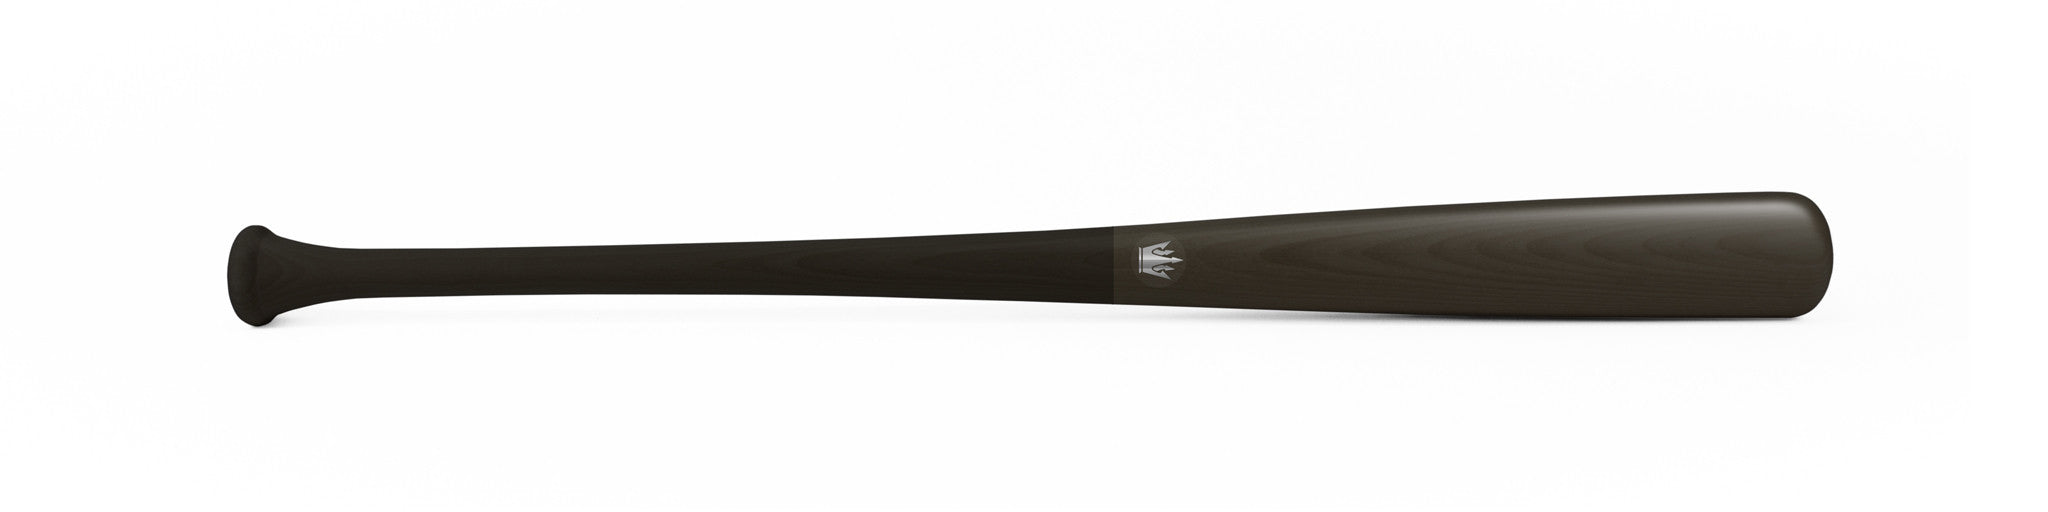 Wood bat - Birch model Y271 Black Charcoal - 14